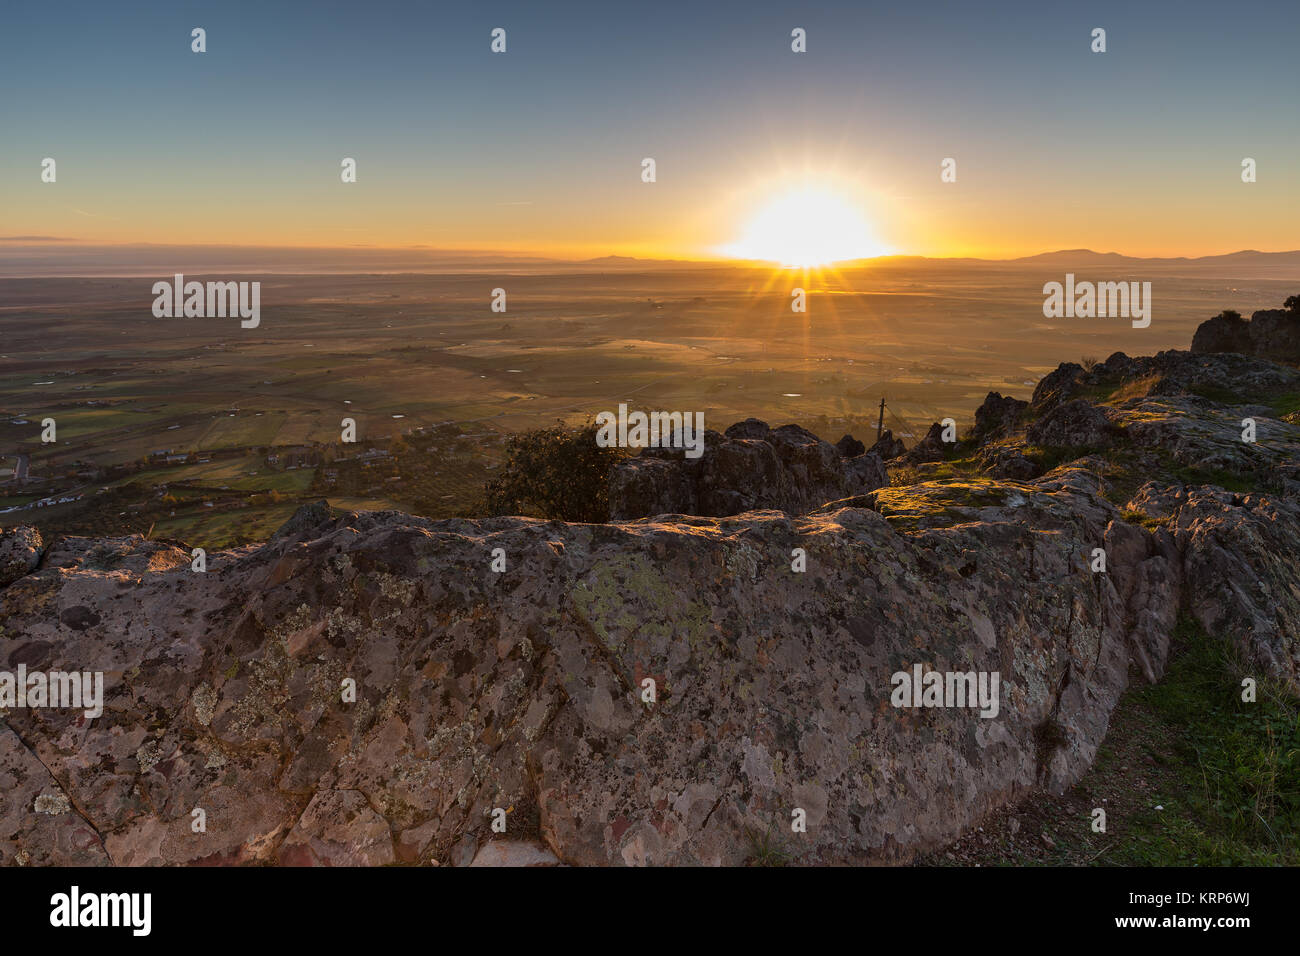 Sunrise from a mountain next to Sierra de Fuentes. Spain. Stock Photo